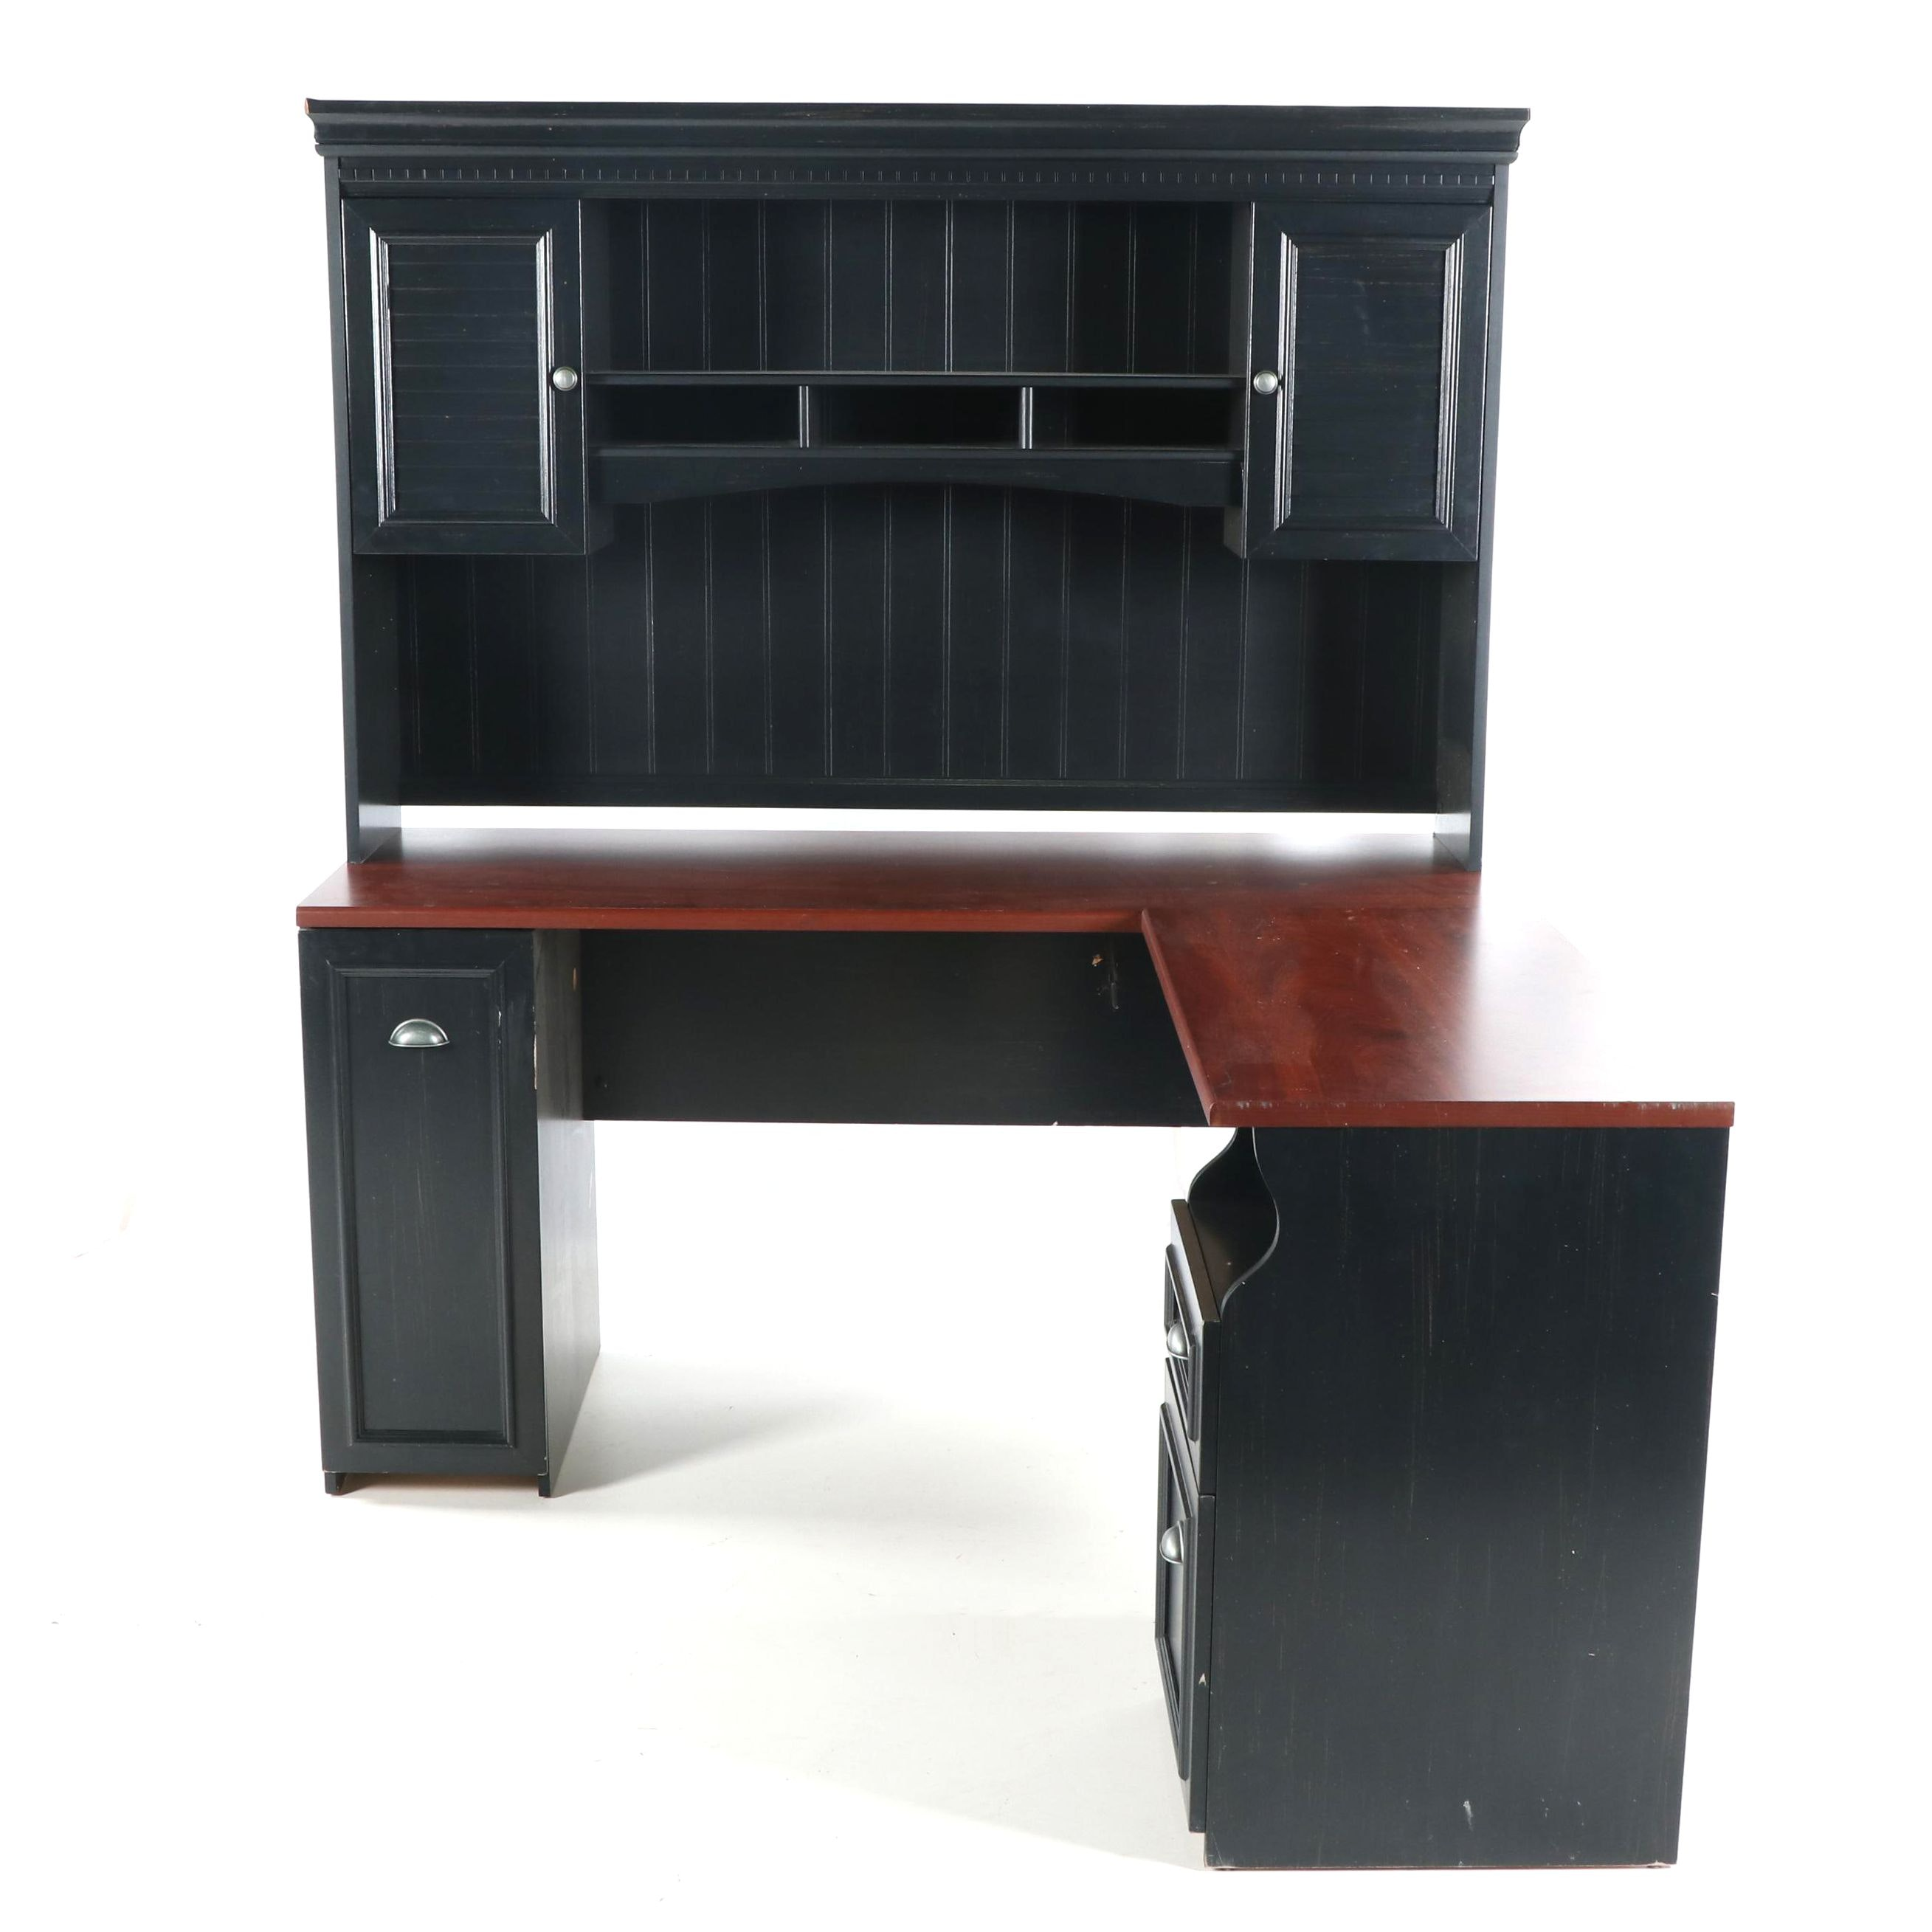 Cape Cod Style Engineered Wood L-Shaped Desk with Bookcase, 21st Century